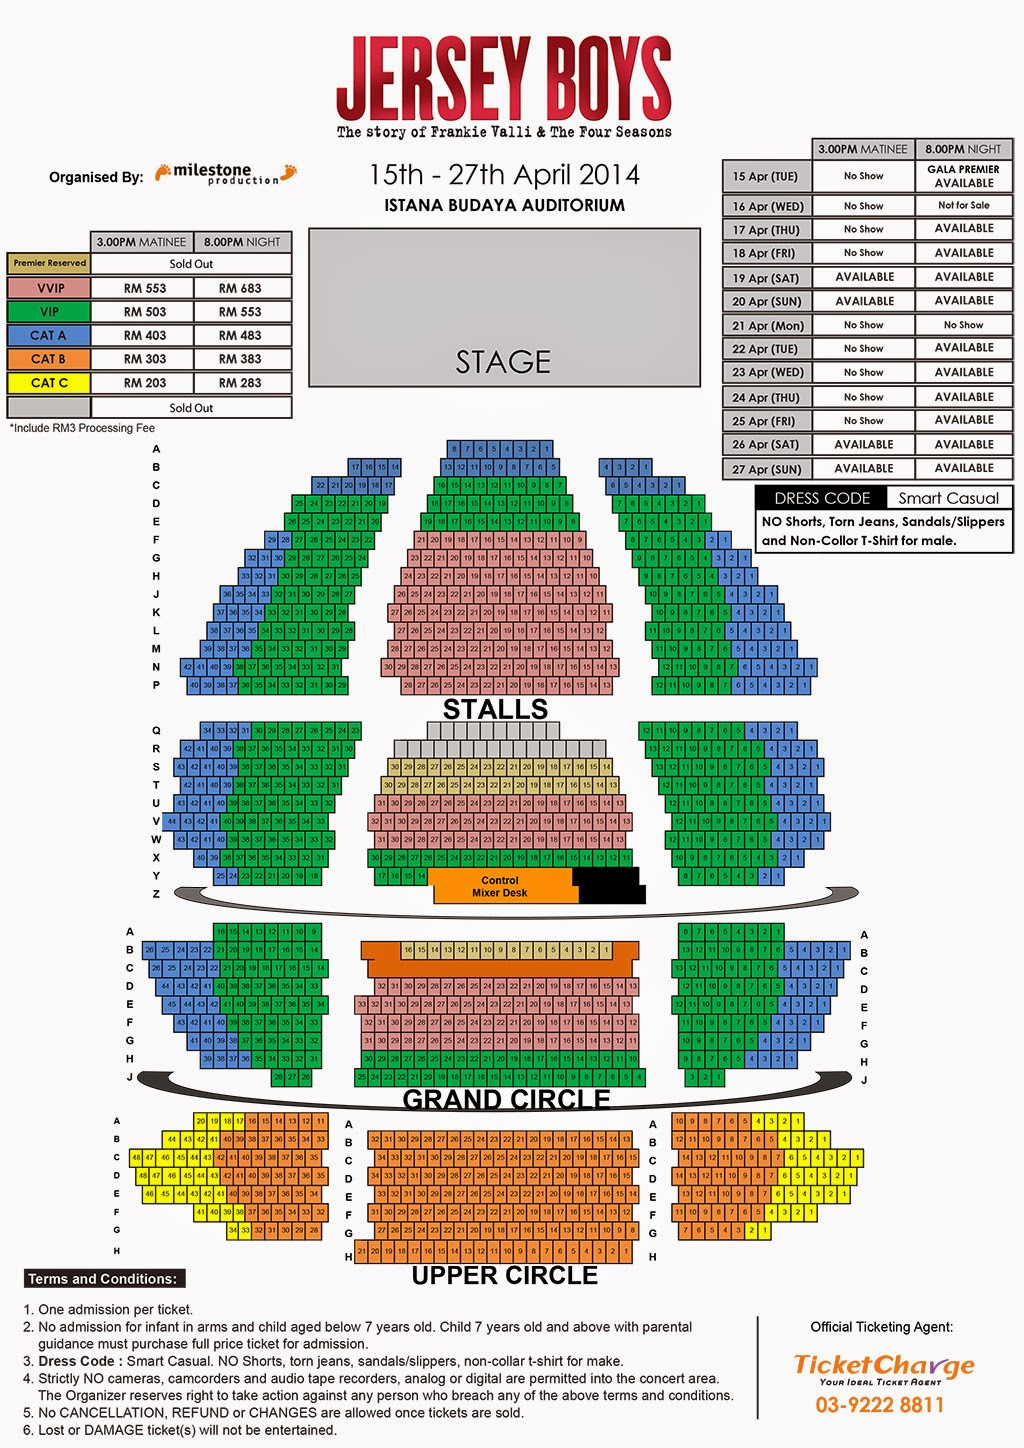 Jersey Boys Seating Layout for the KL Malaysia Show